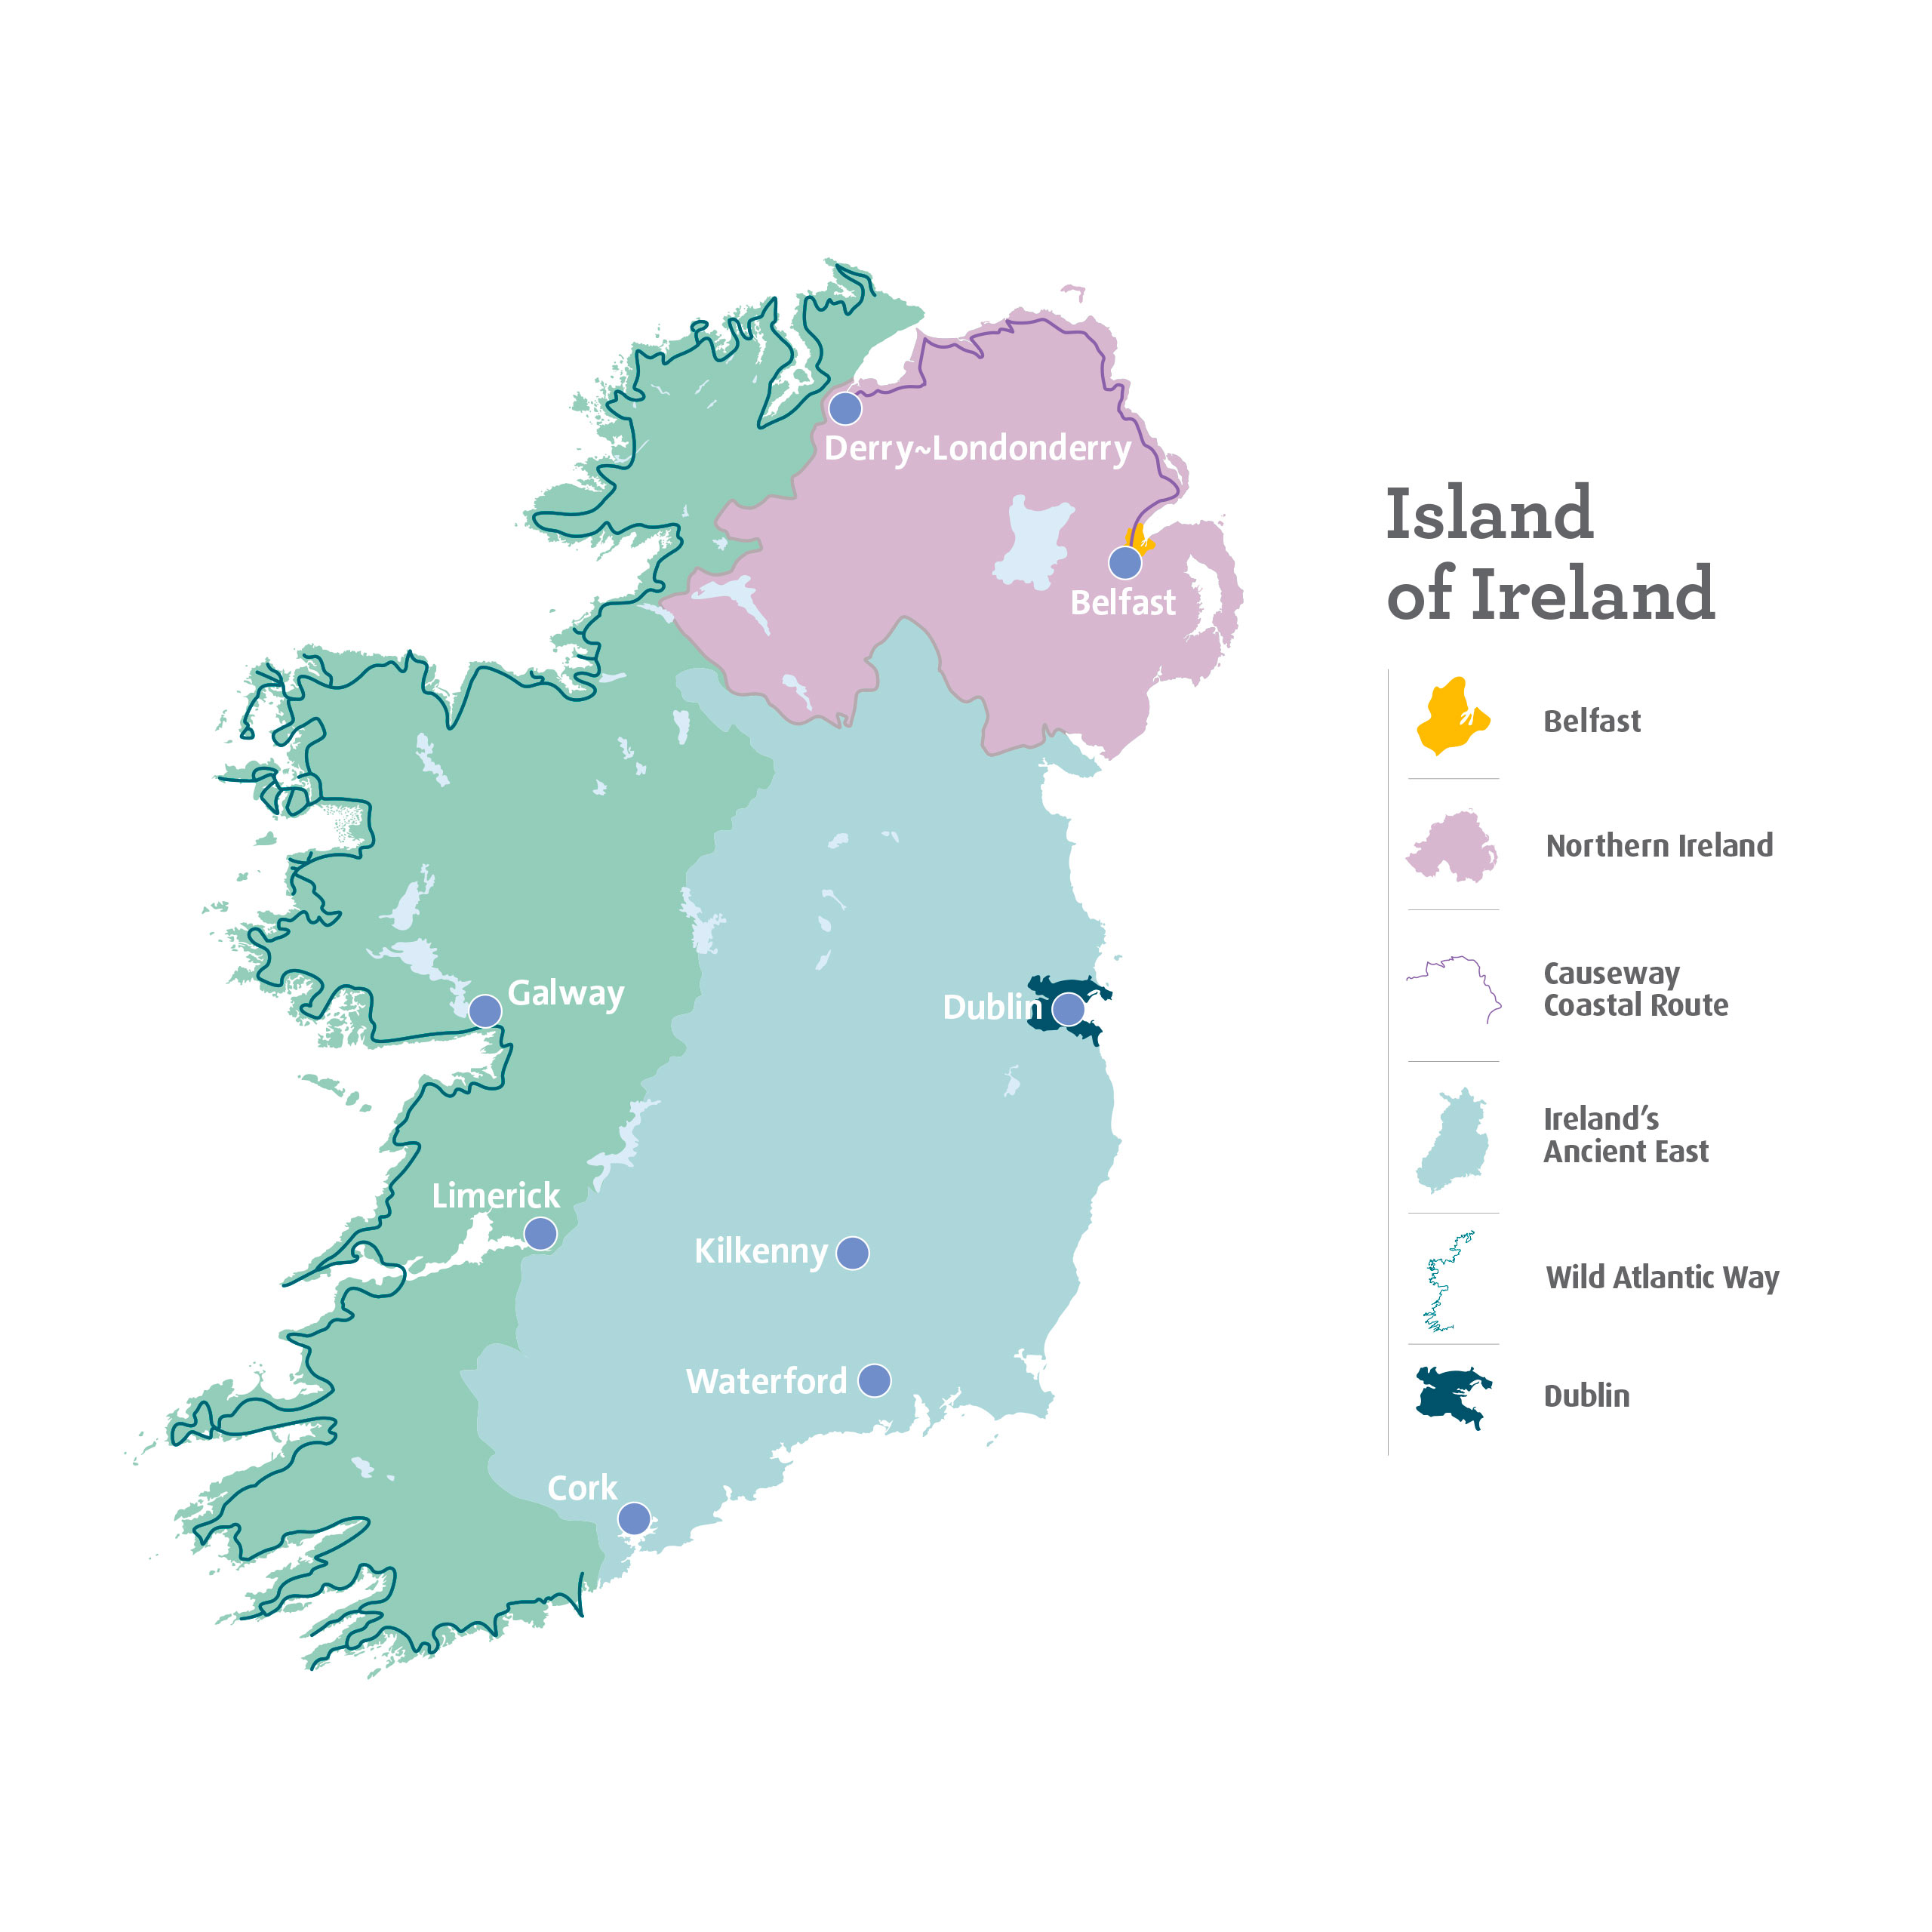 Map Of Ireland Islands.The Island Of Ireland Ireland Com